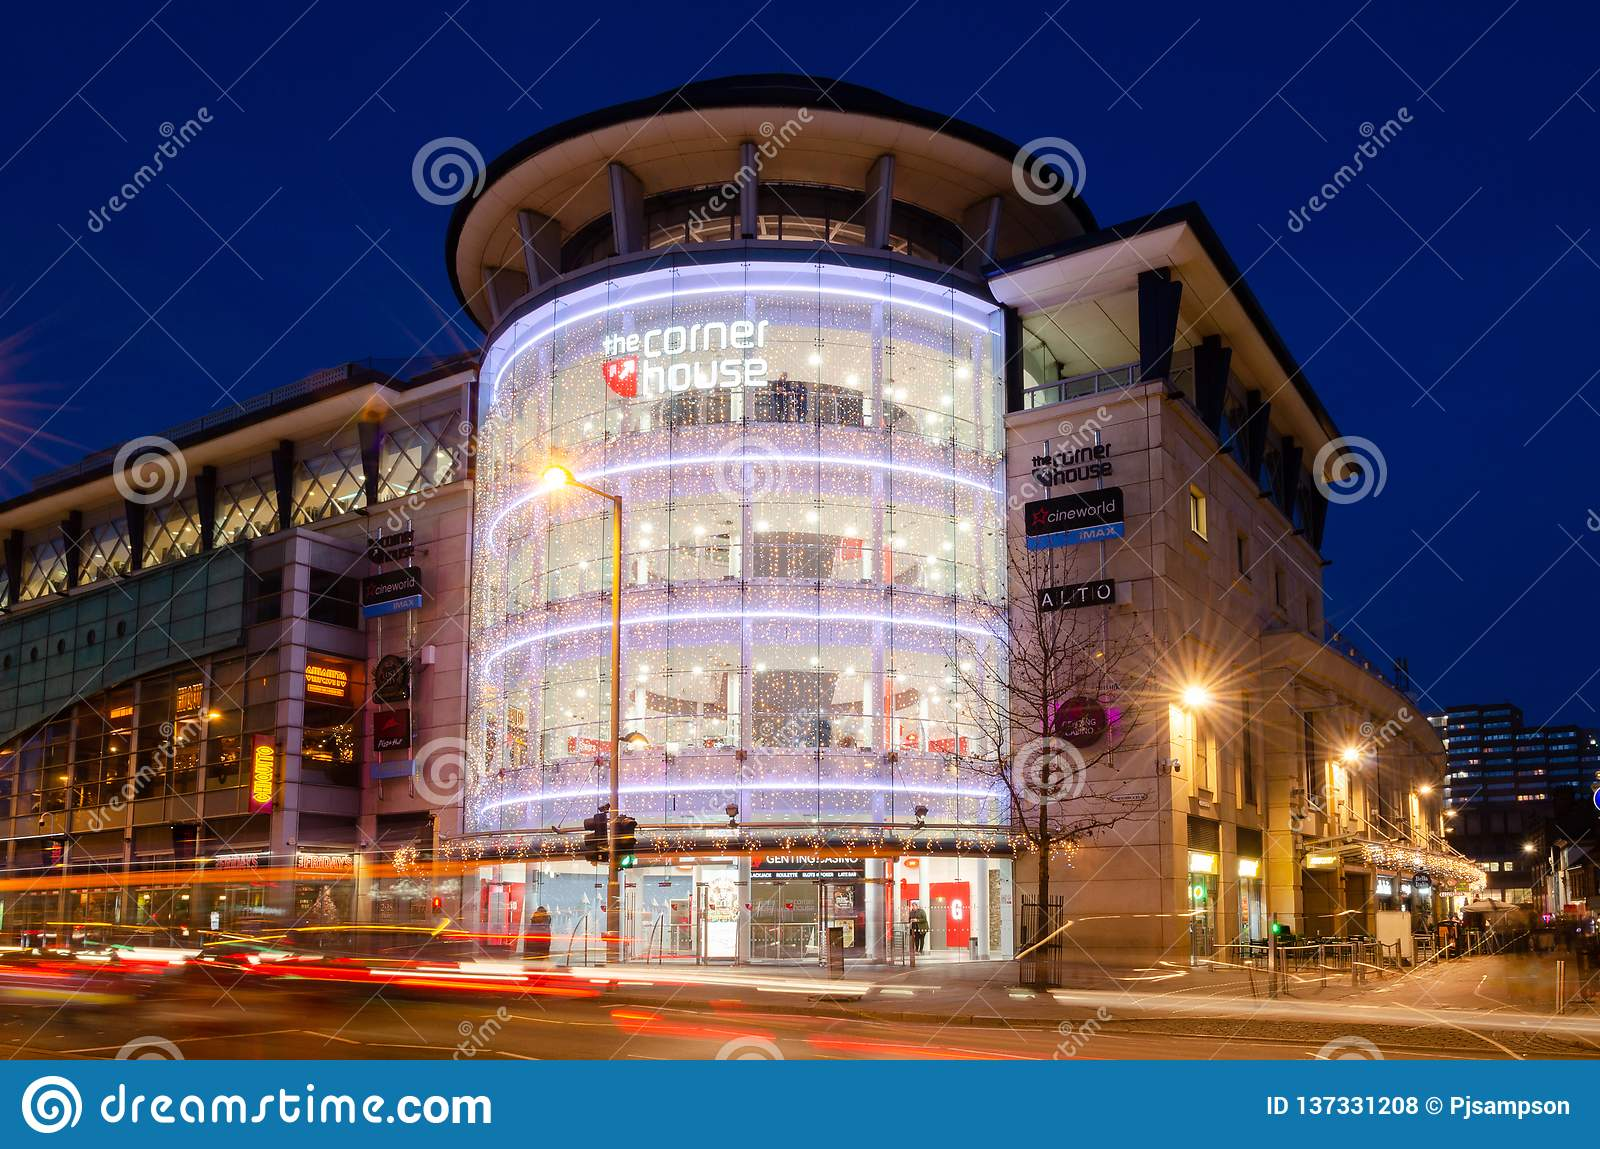 Cornerhouse Building in Nottingham, UK